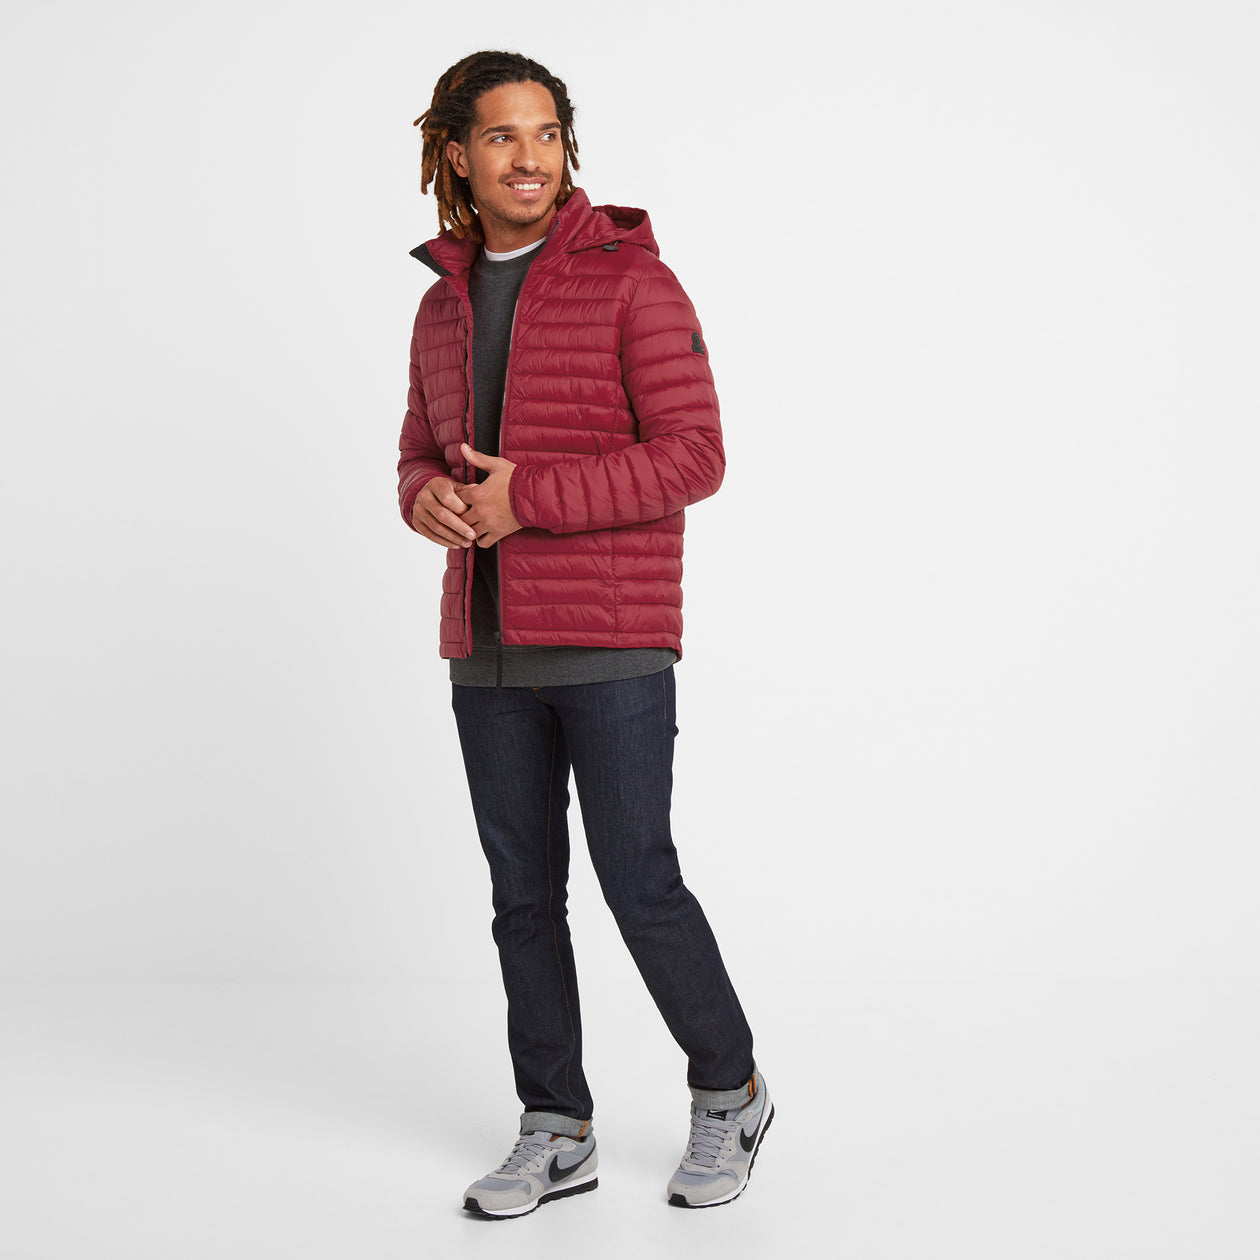 Helme Mens Padded Jacket - Rio Red image 4